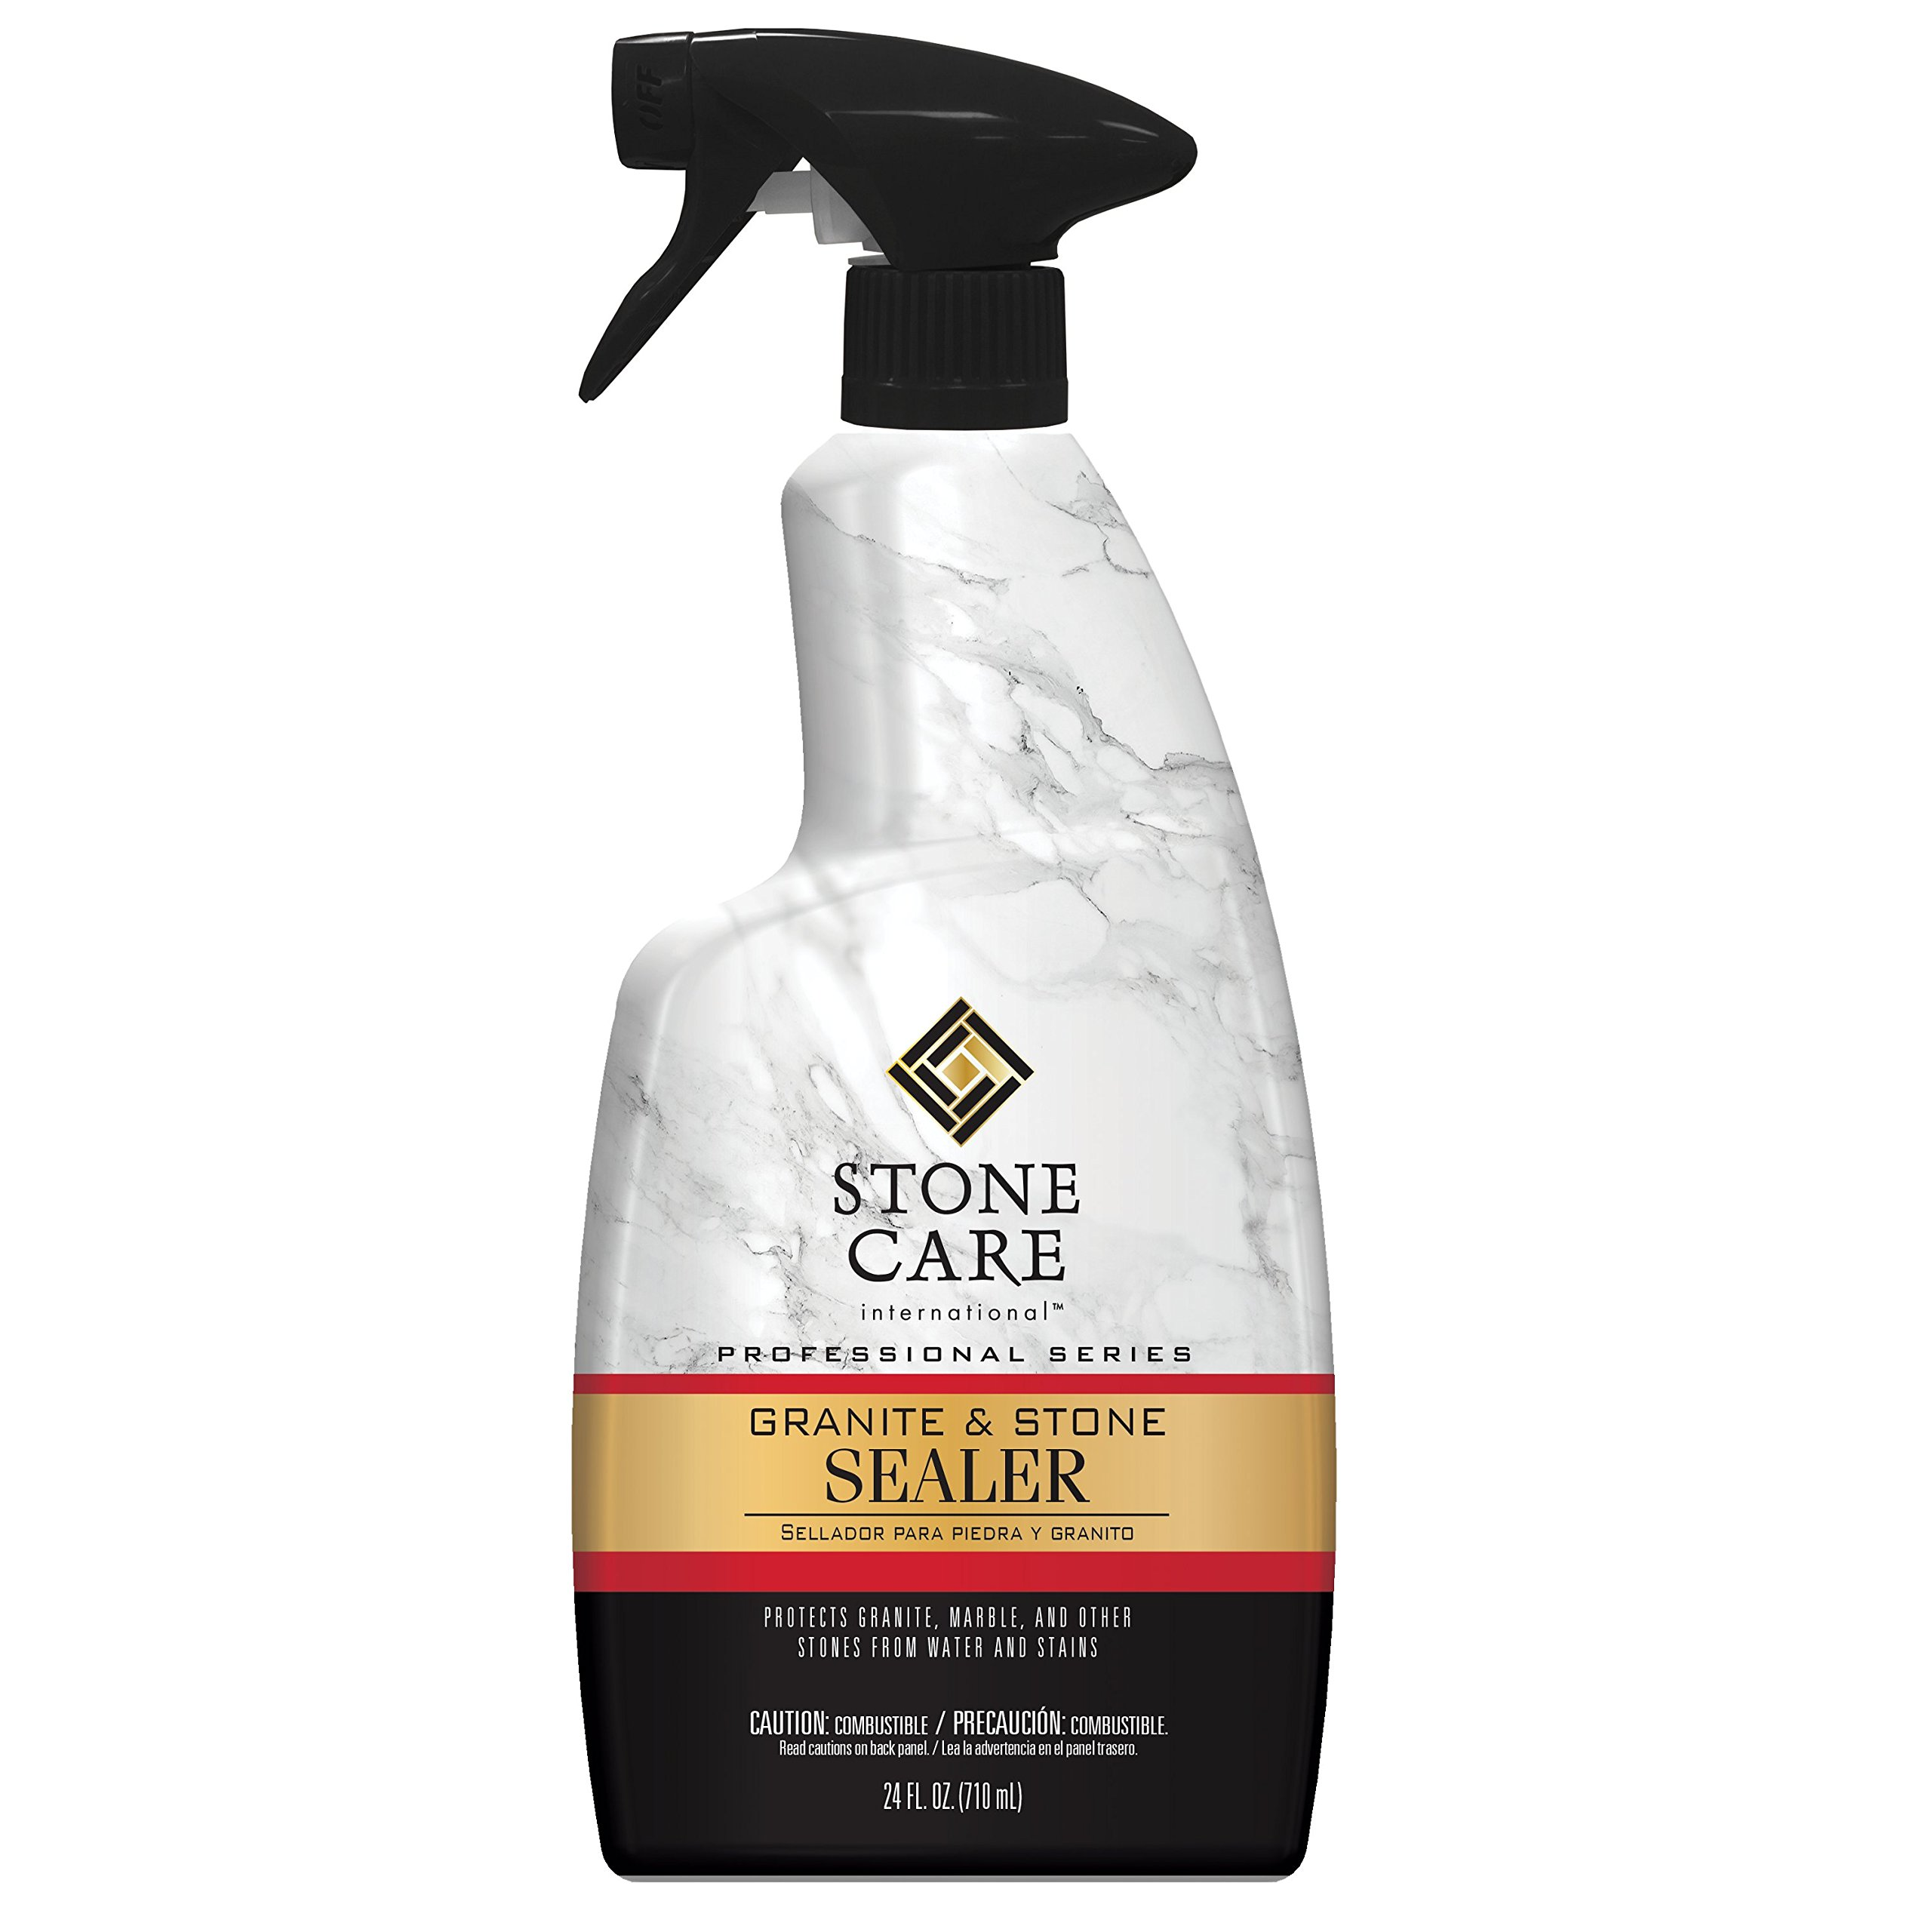 Stone Care Int. Granite Sealer & Protector - 24 Ounce - Best Stone Polish, Protectant & Care Product - Clean Countertop Surface Marble Tile - No Streaks Stains Haze Spots